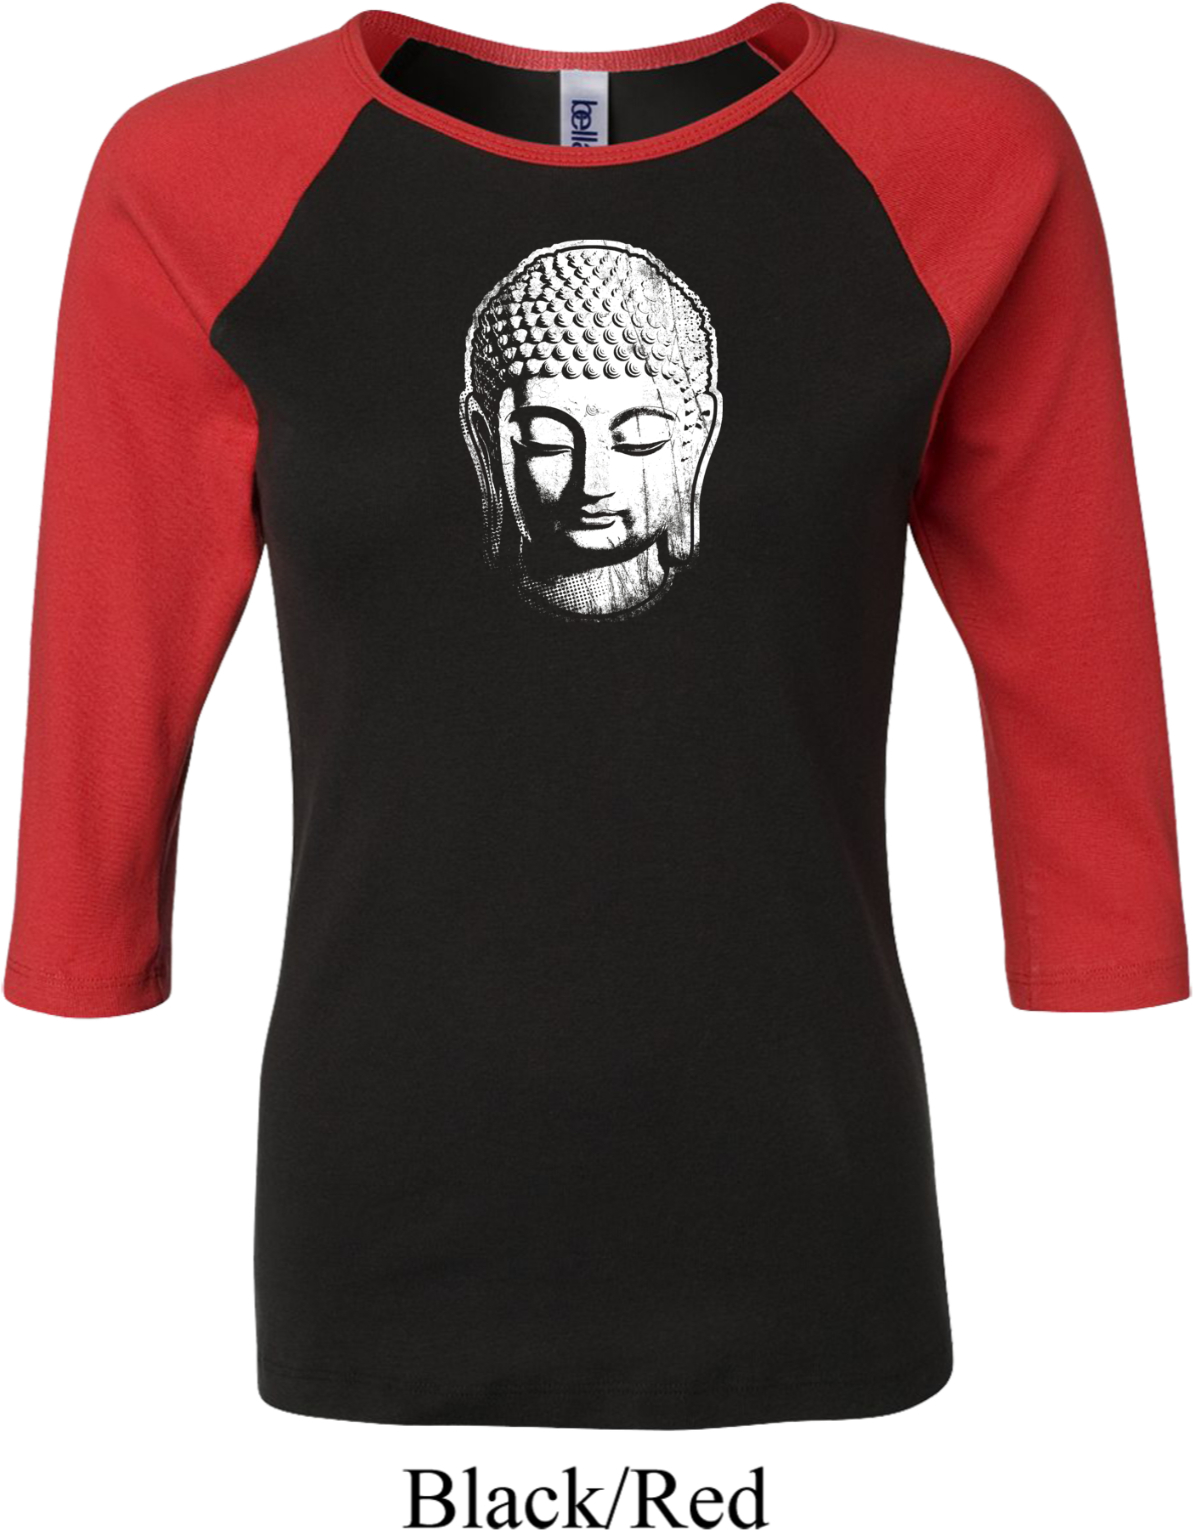 ladies yoga shirt little buddha head raglan tee t shirt. Black Bedroom Furniture Sets. Home Design Ideas